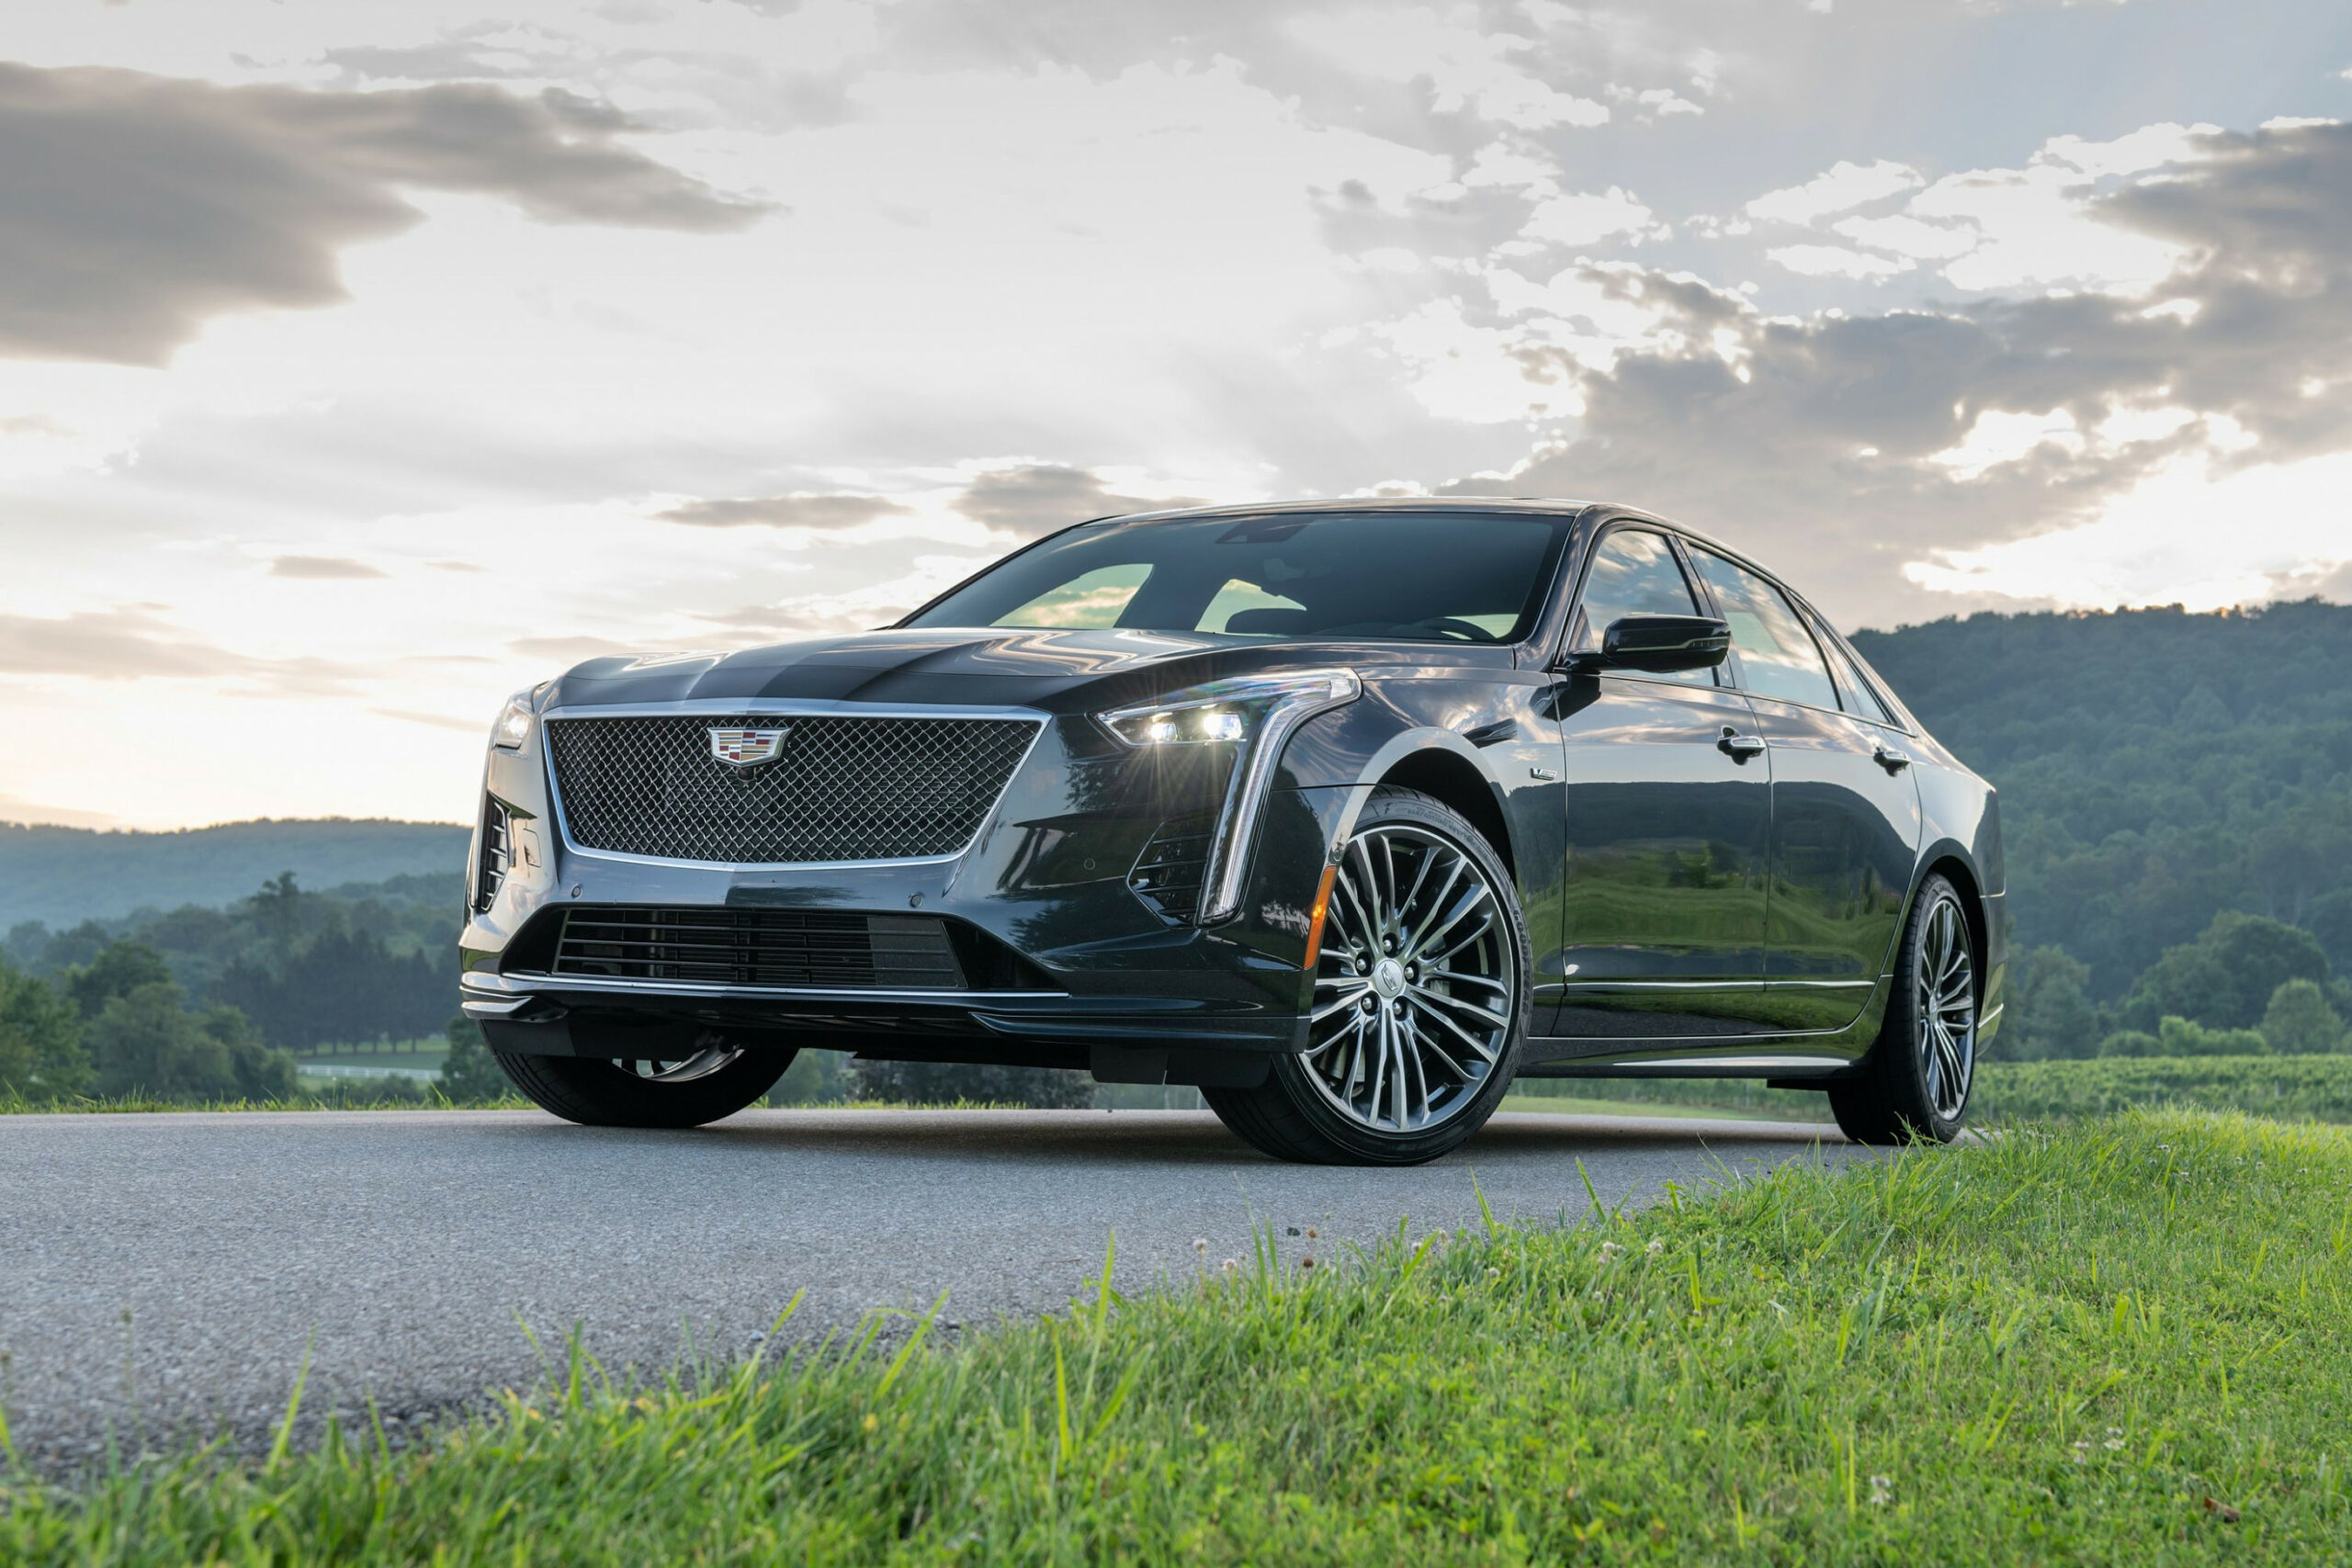 6 Cadillac CT6-V First Drive Review - 2020 cadillac fastest